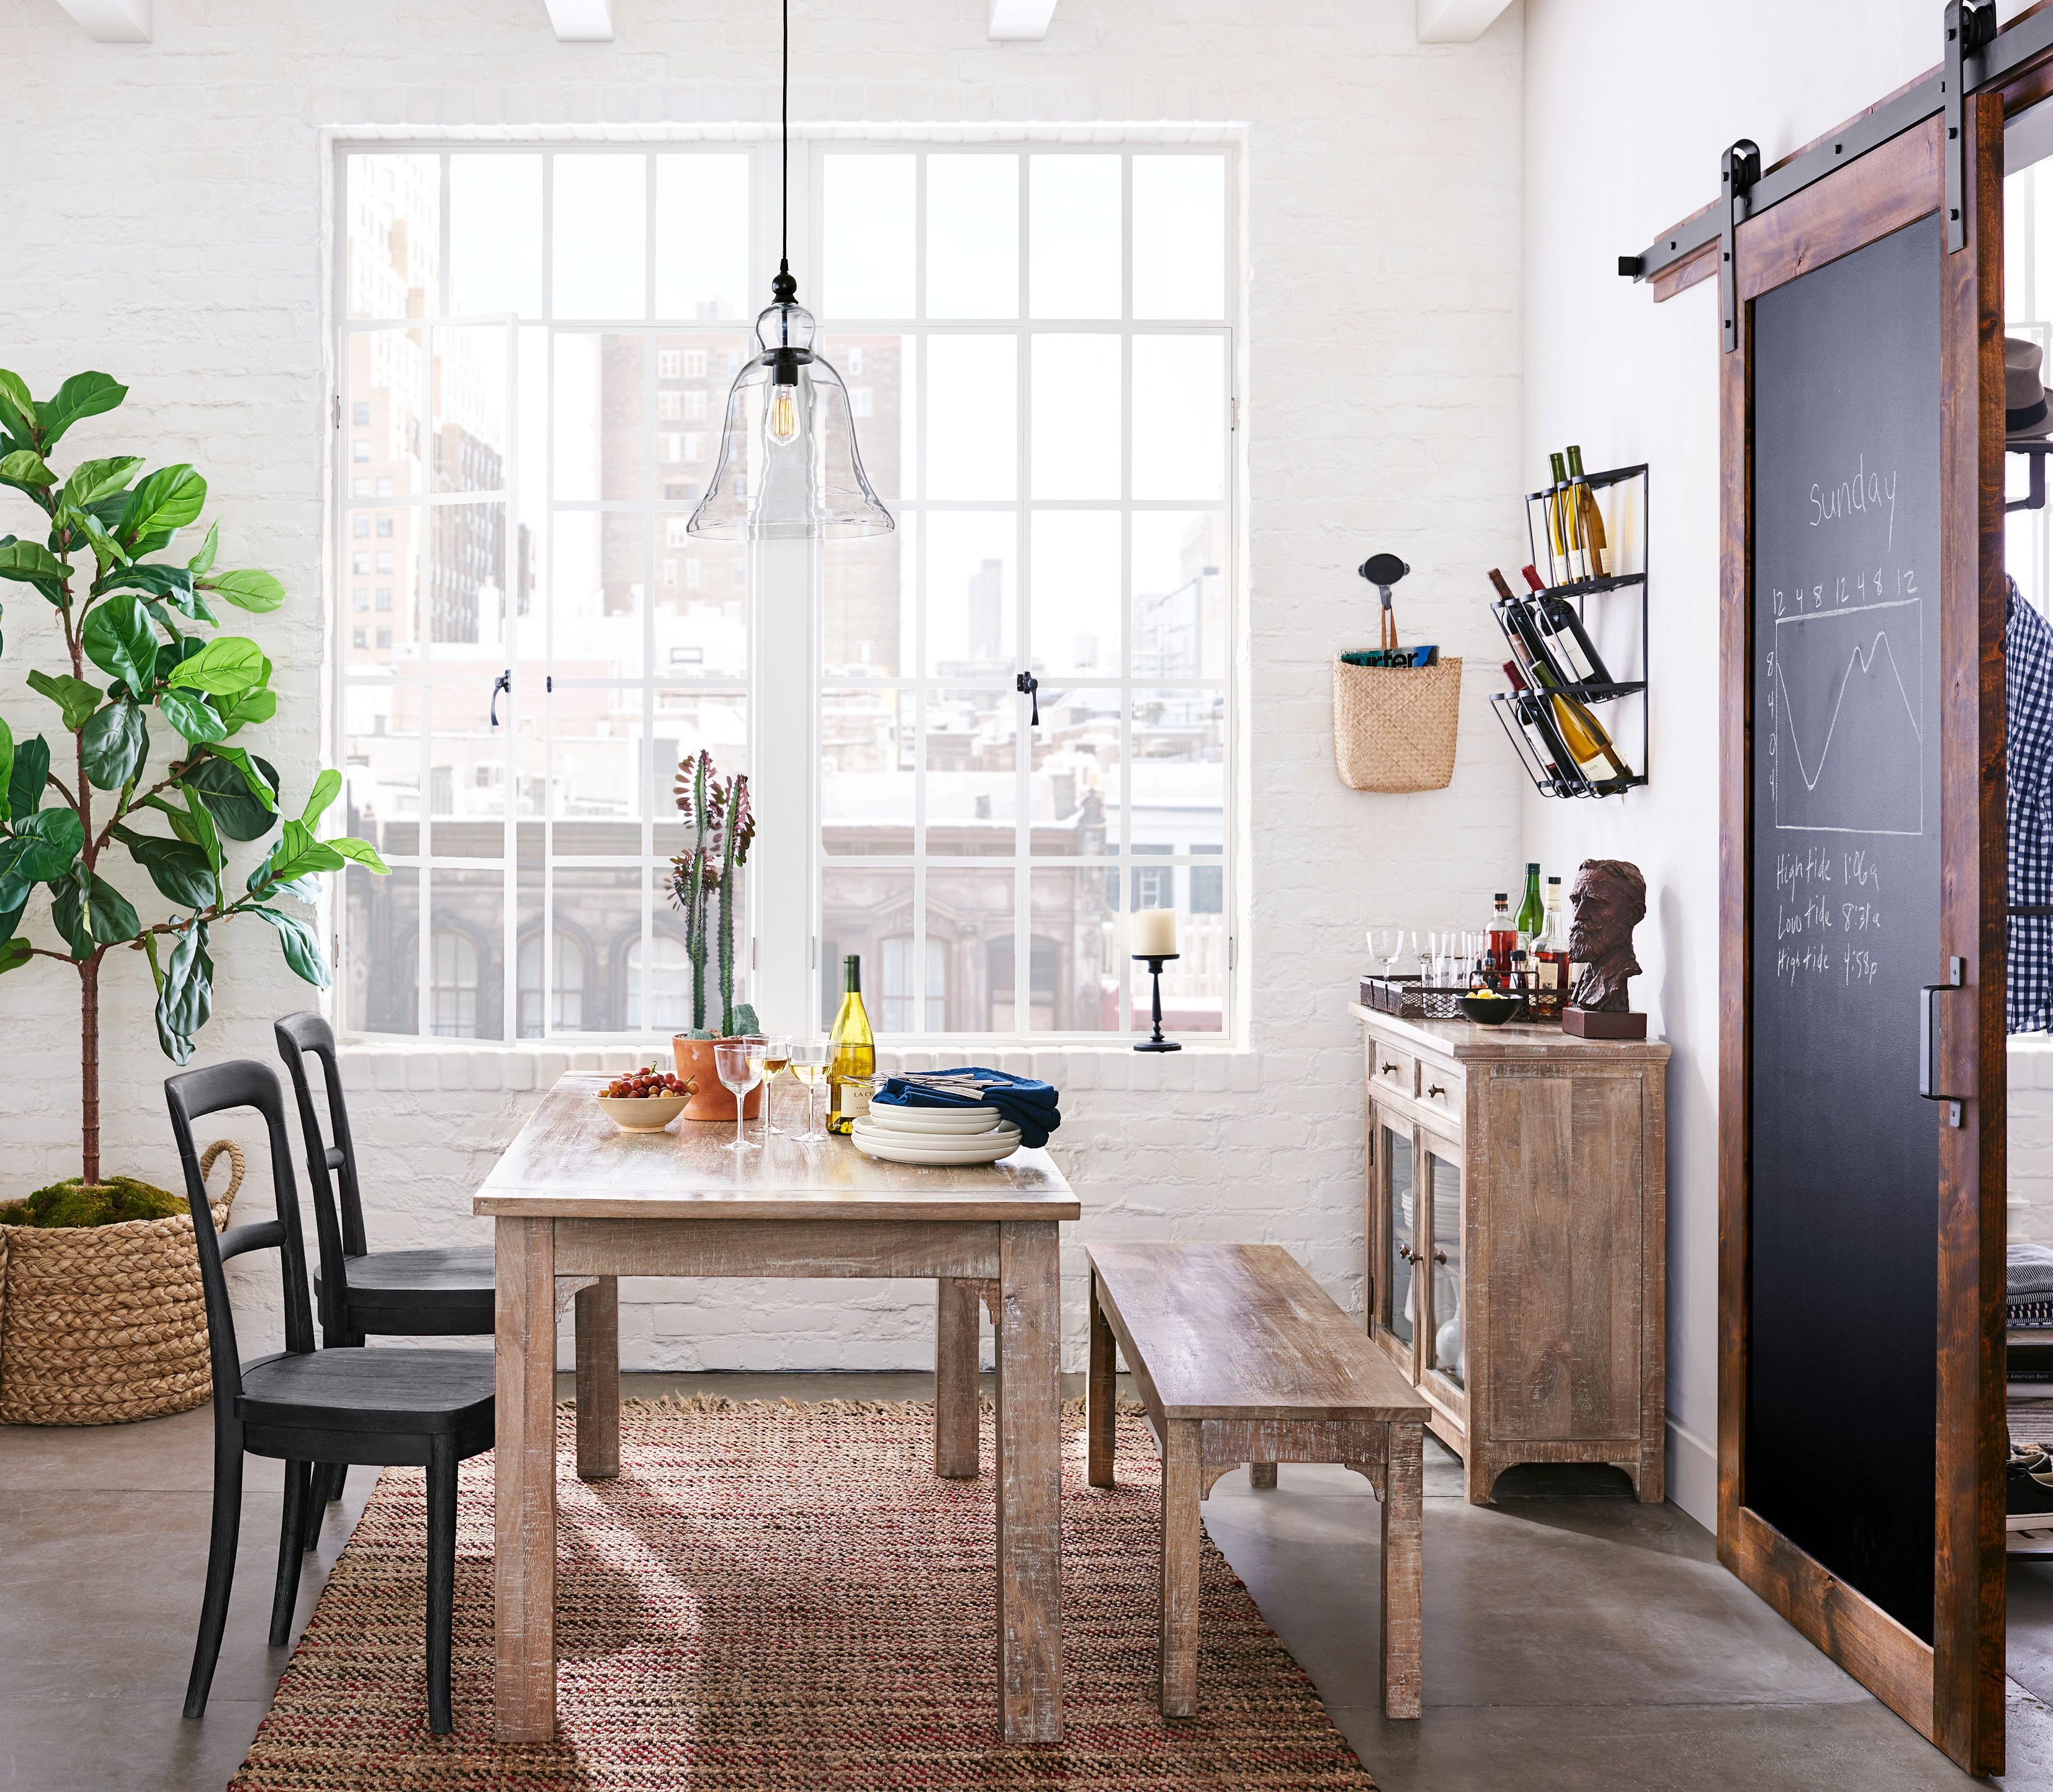 Pottery Barn Launches Pb Apartment To Focus On Small Spaces